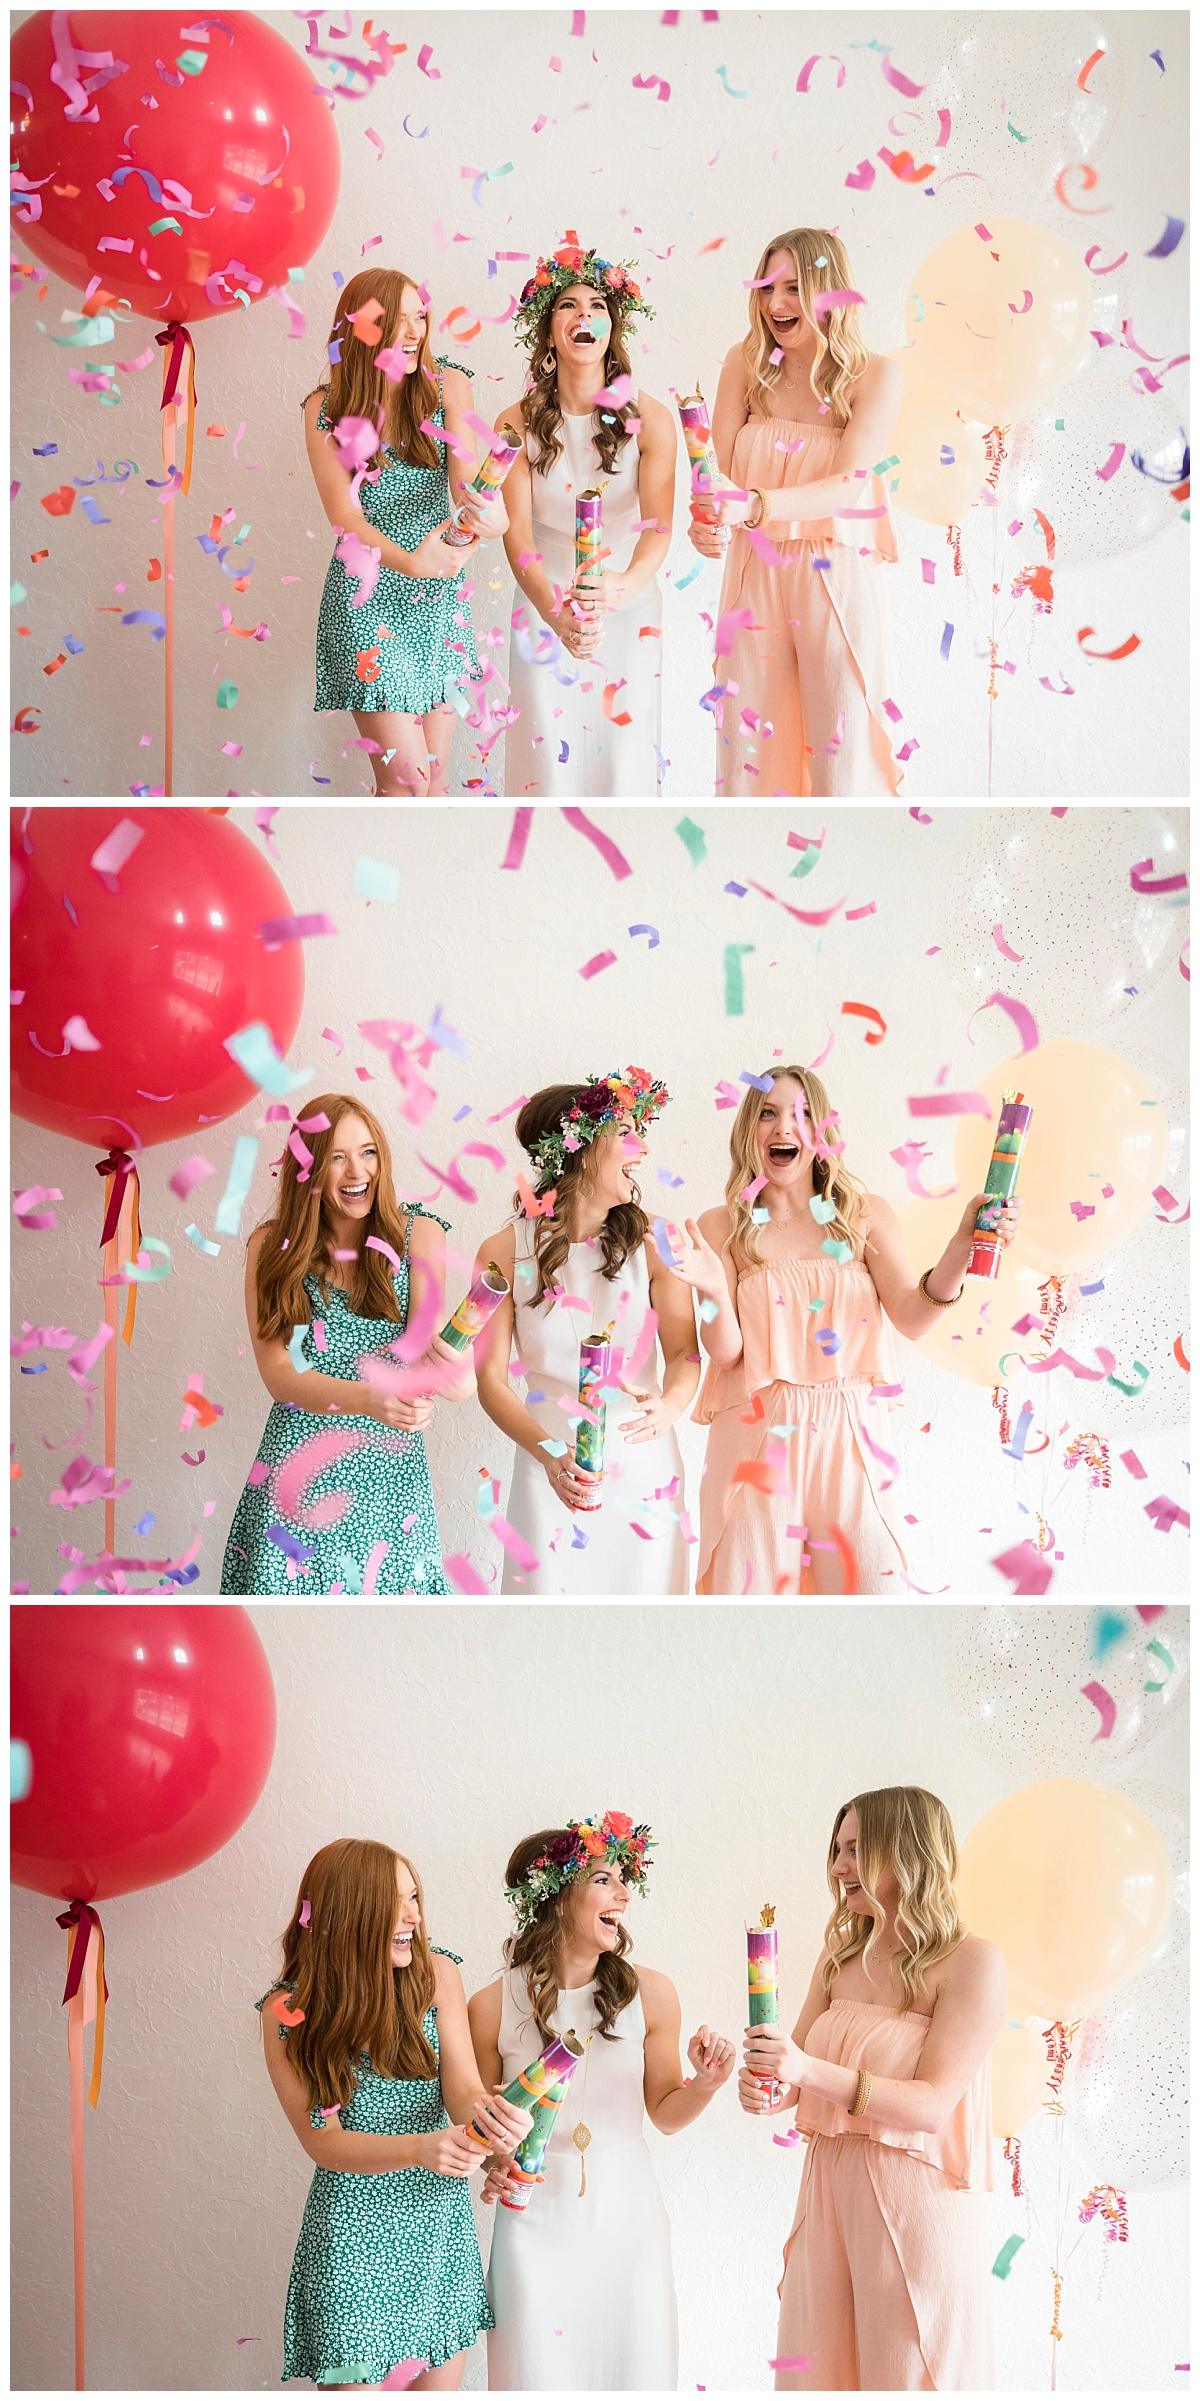 Sioux Falls Wedding Photography | Bethany Melvin Photography | Confetti Poppers Wedding